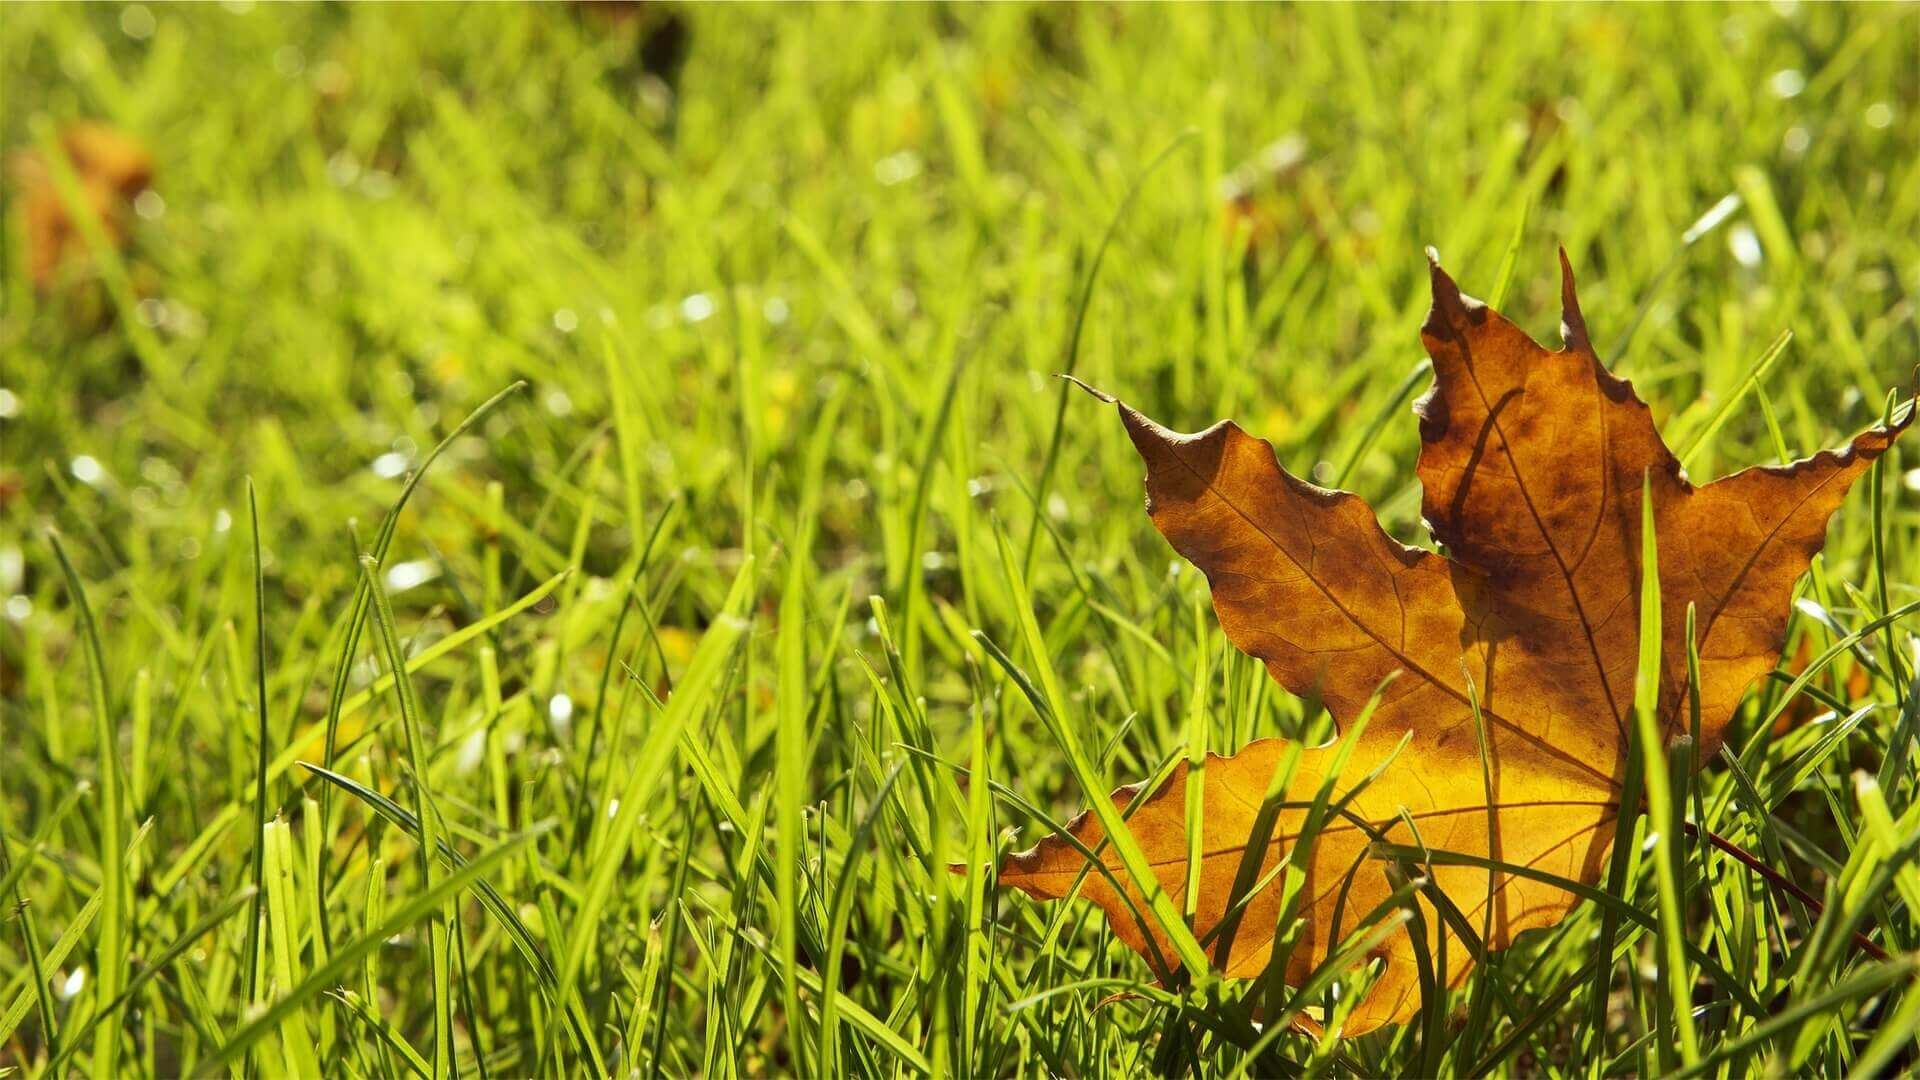 Fall leaf on grass.